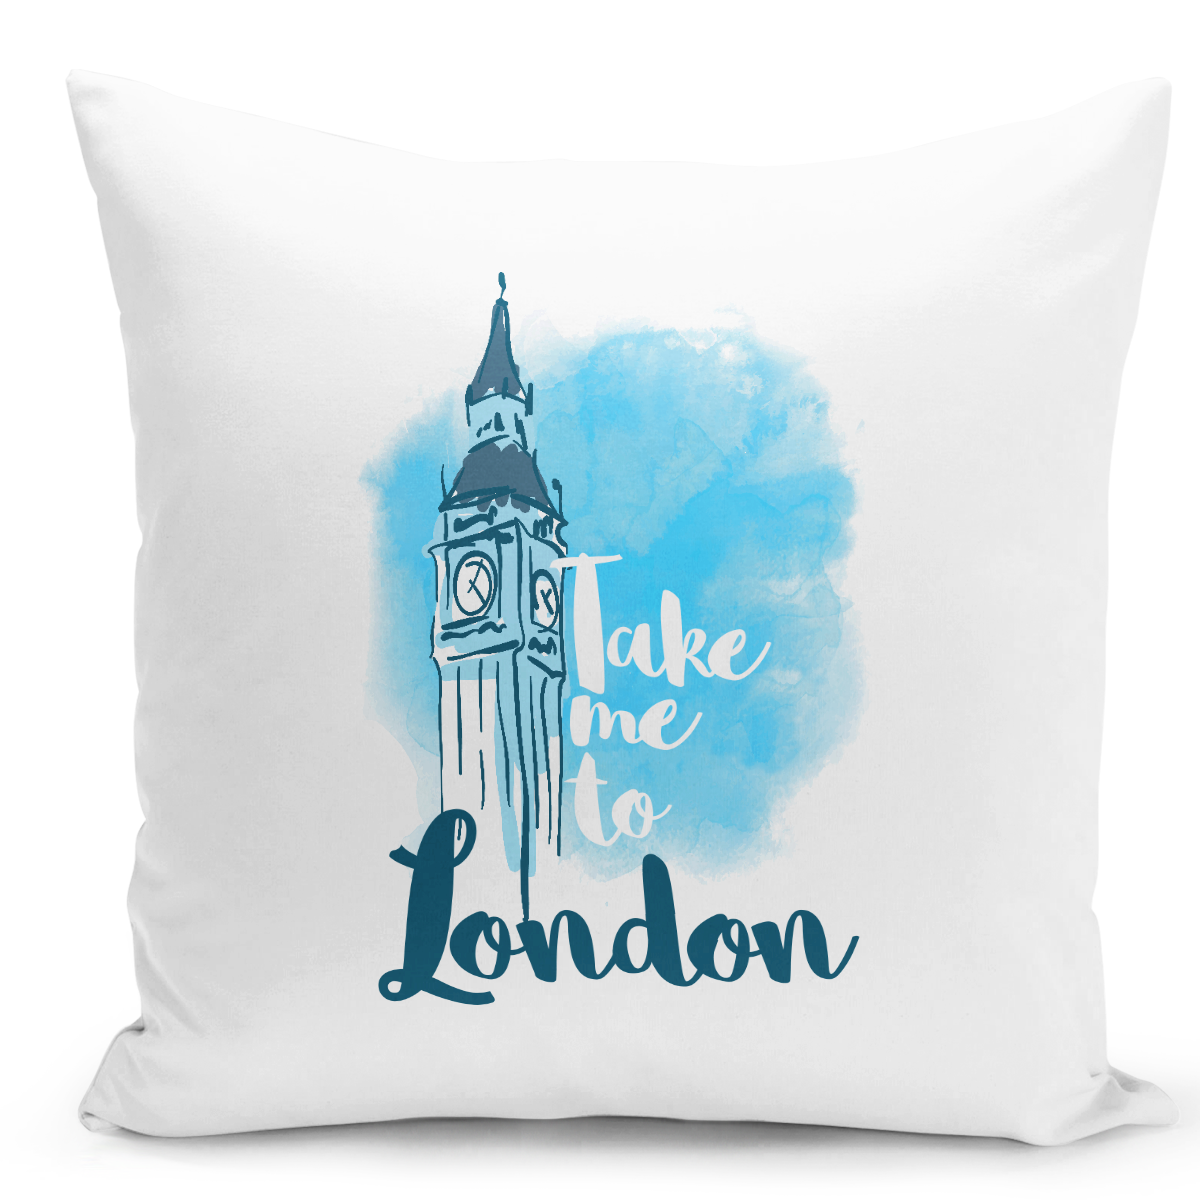 White-Throw-Pillow-Take-Me-To-Londonfamous-World-Destination-Vacation-Pillow---Premium-100%-Polyester-16-x-16-inch-Square-Modern-Livingroom-Decorative-Pillow-16x16-inch-